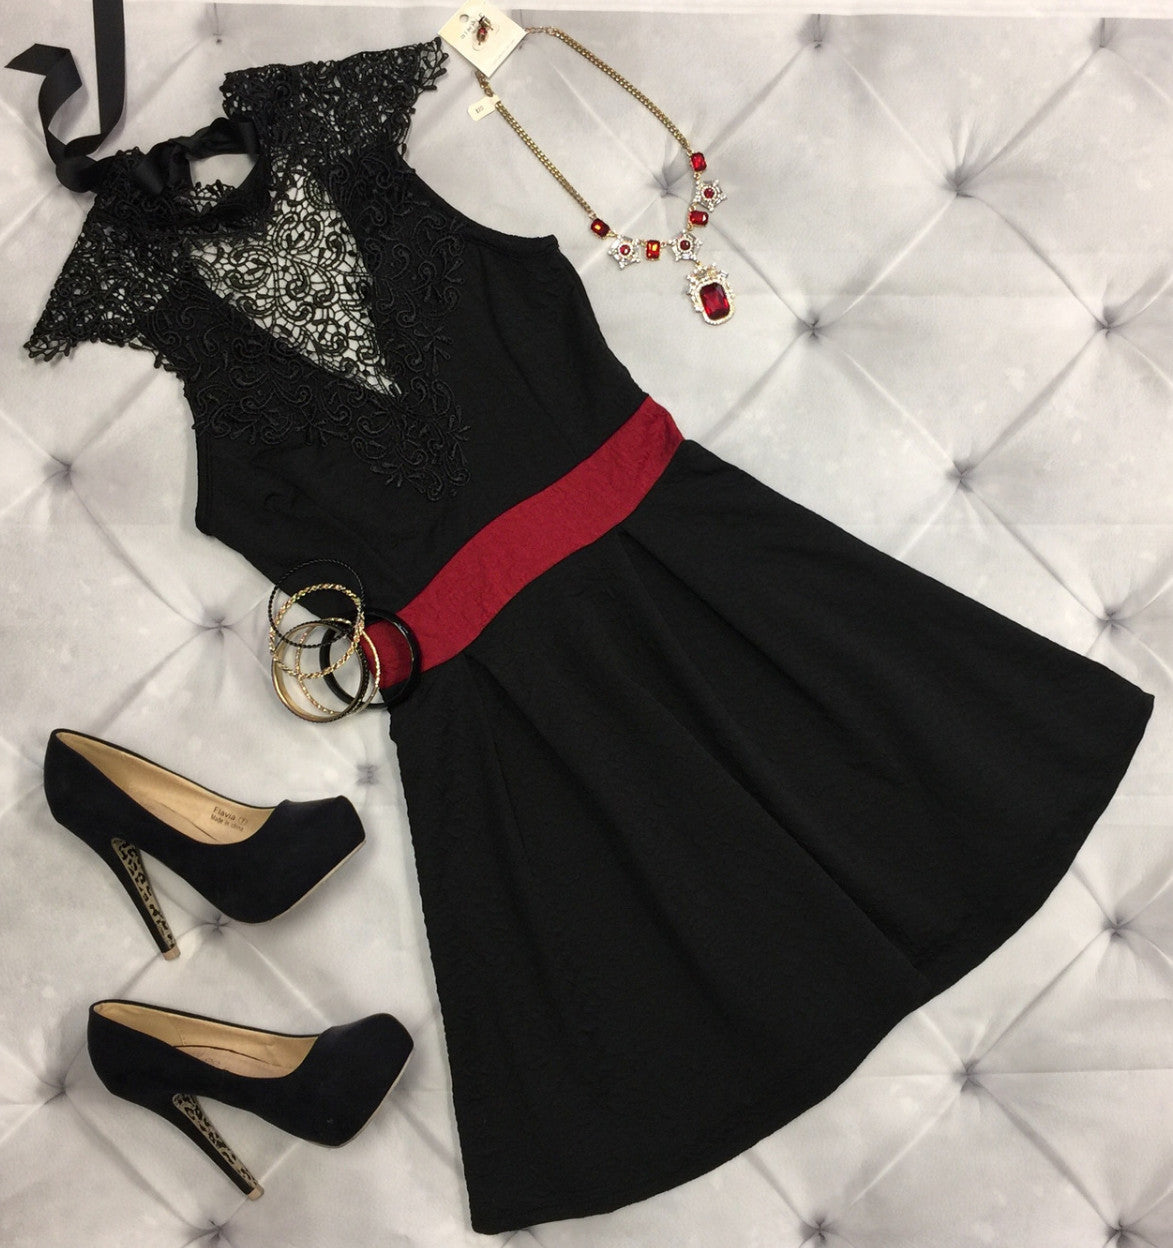 Symptoms of Love Dress: Black